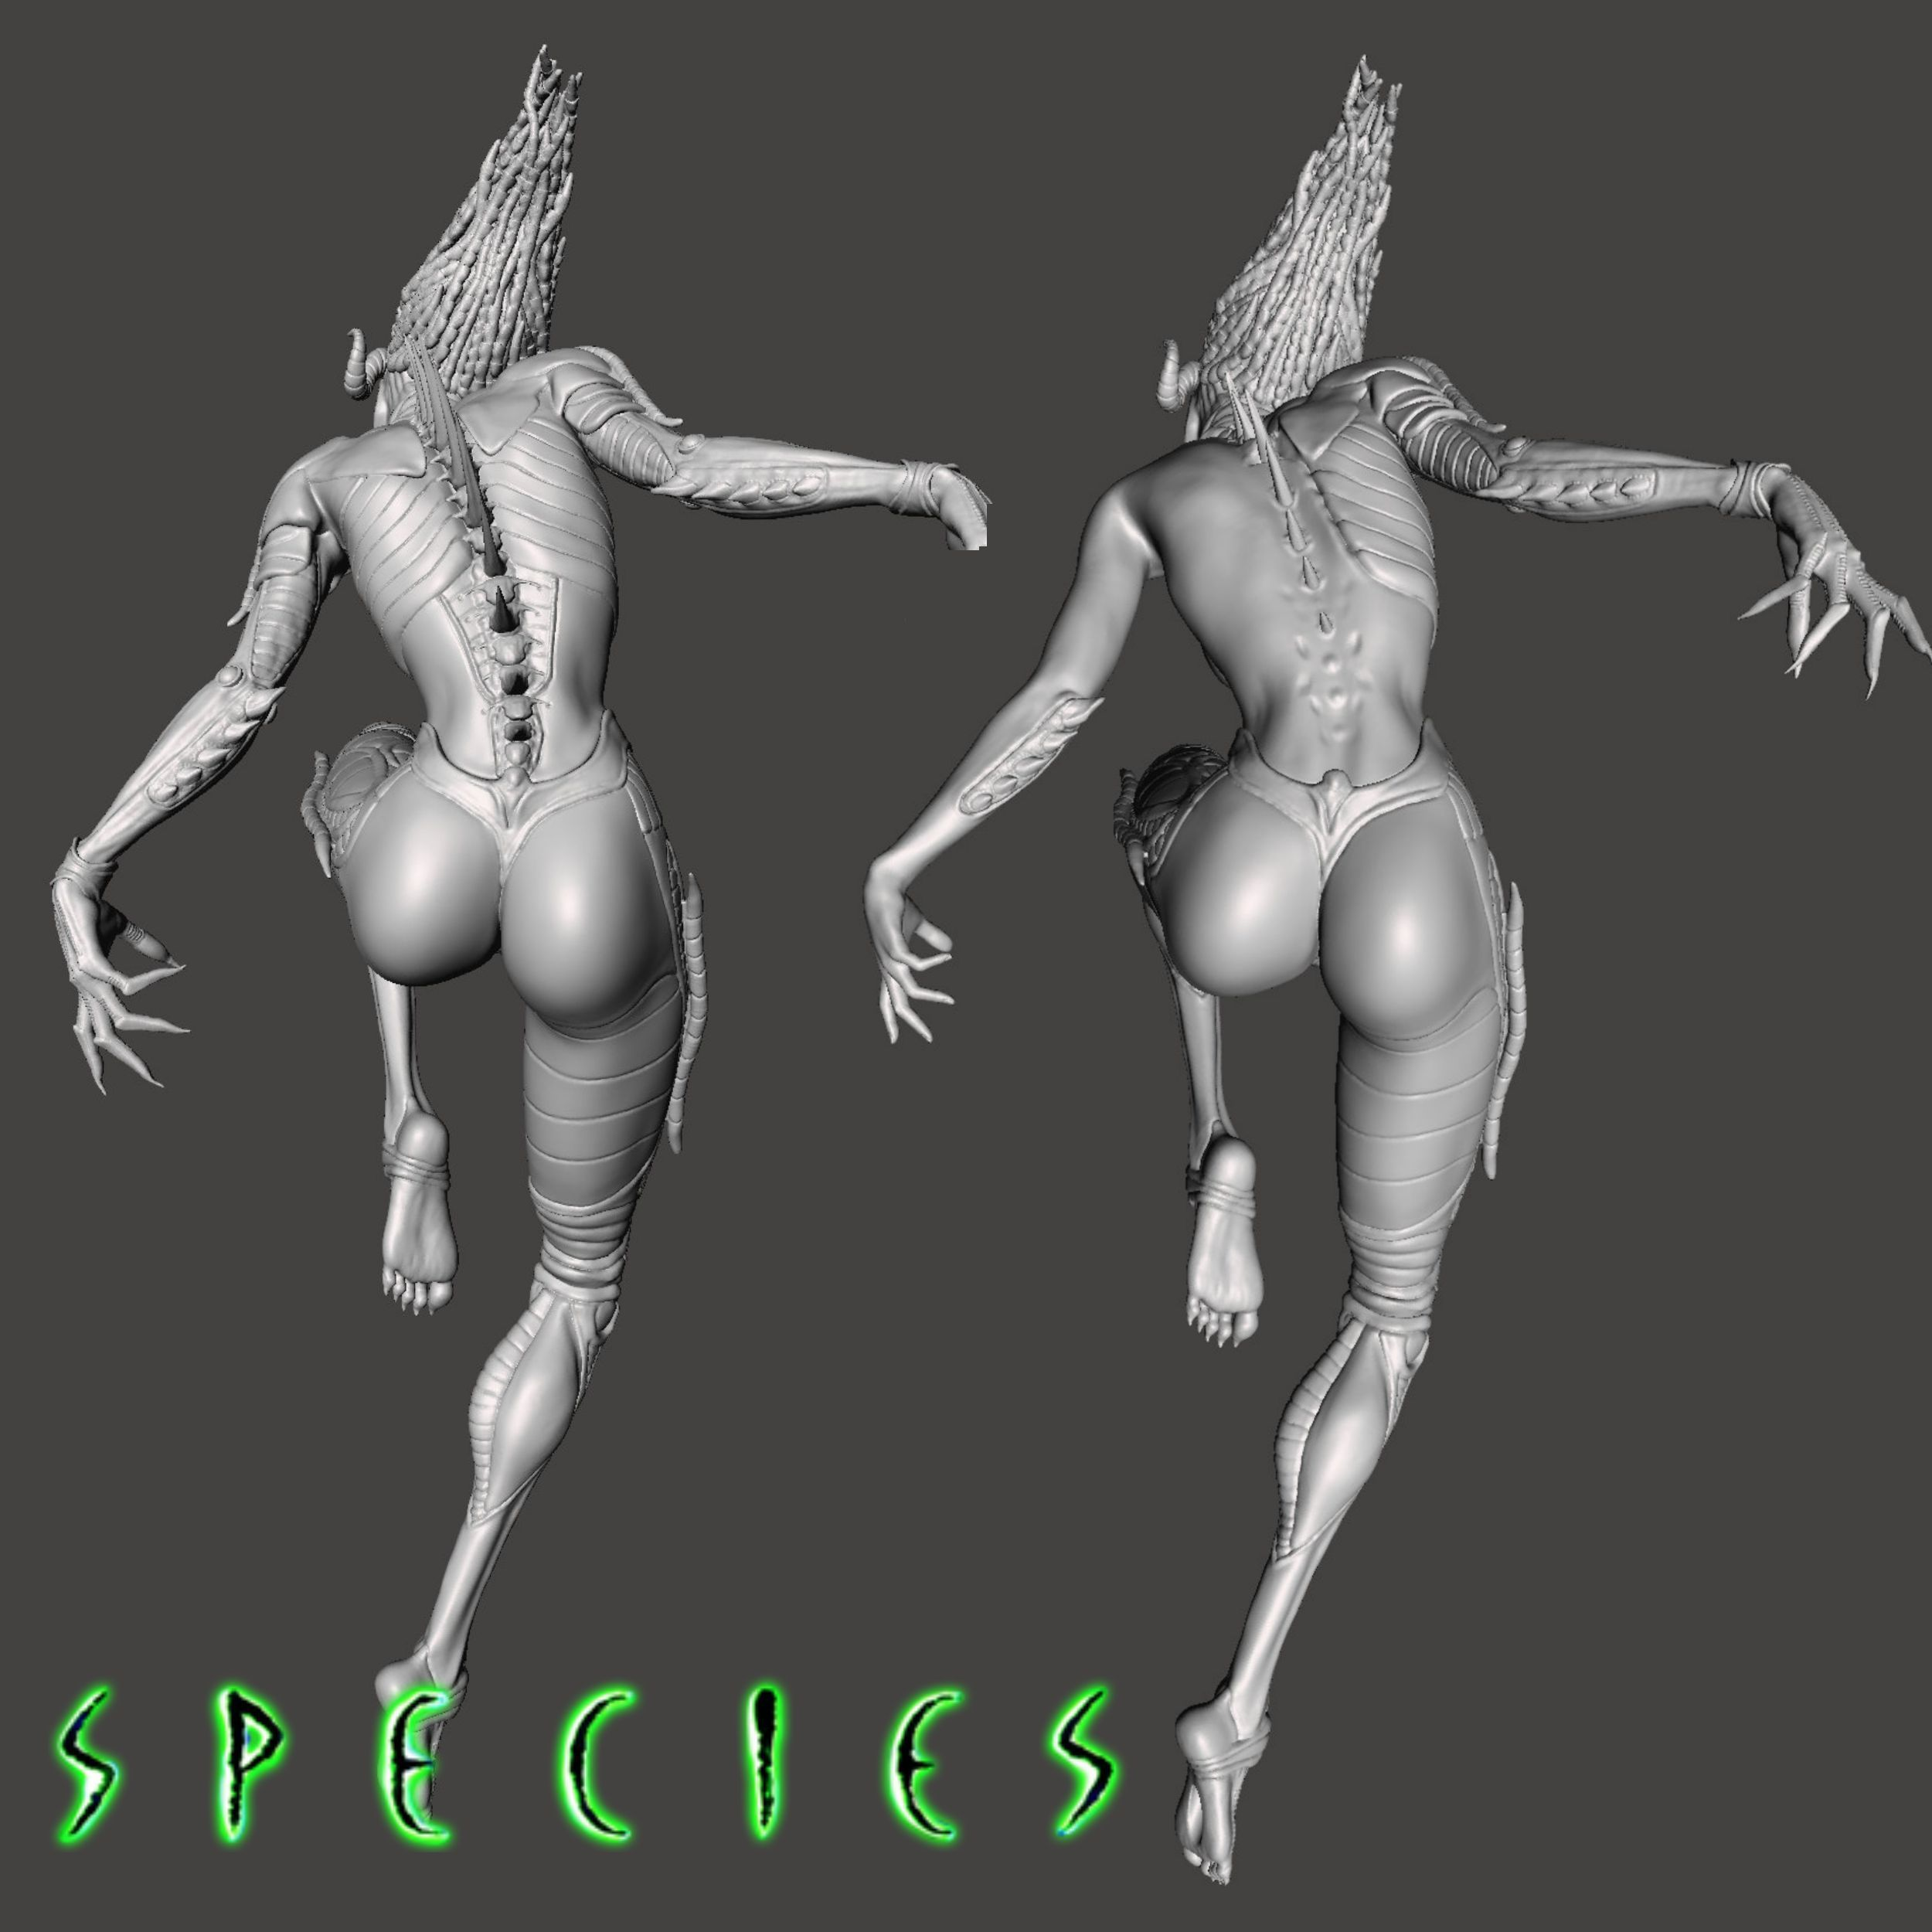 Image14.jpg Download STL file Alien Girl - SPECIES Part 1- by SPARX • 3D printable object, wikd2011